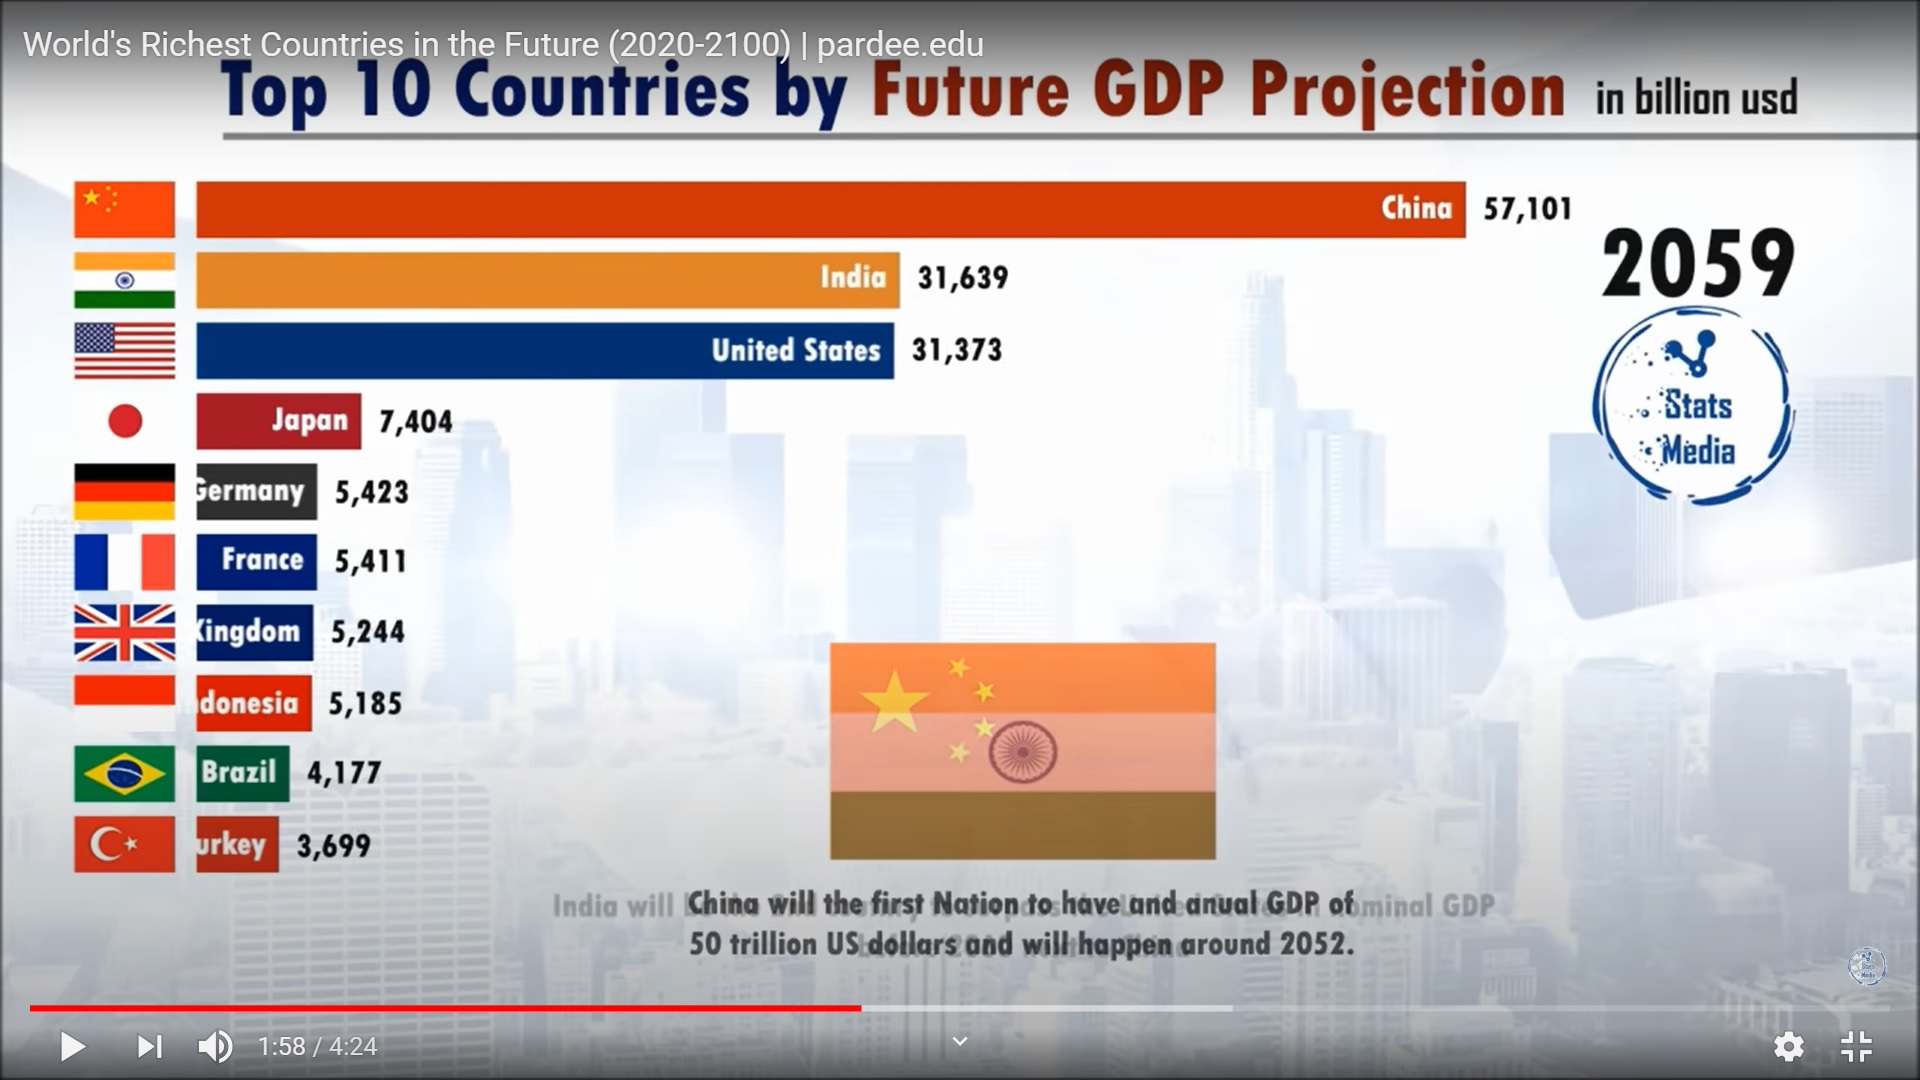 FUTURE GDP INDIA CHINA USA